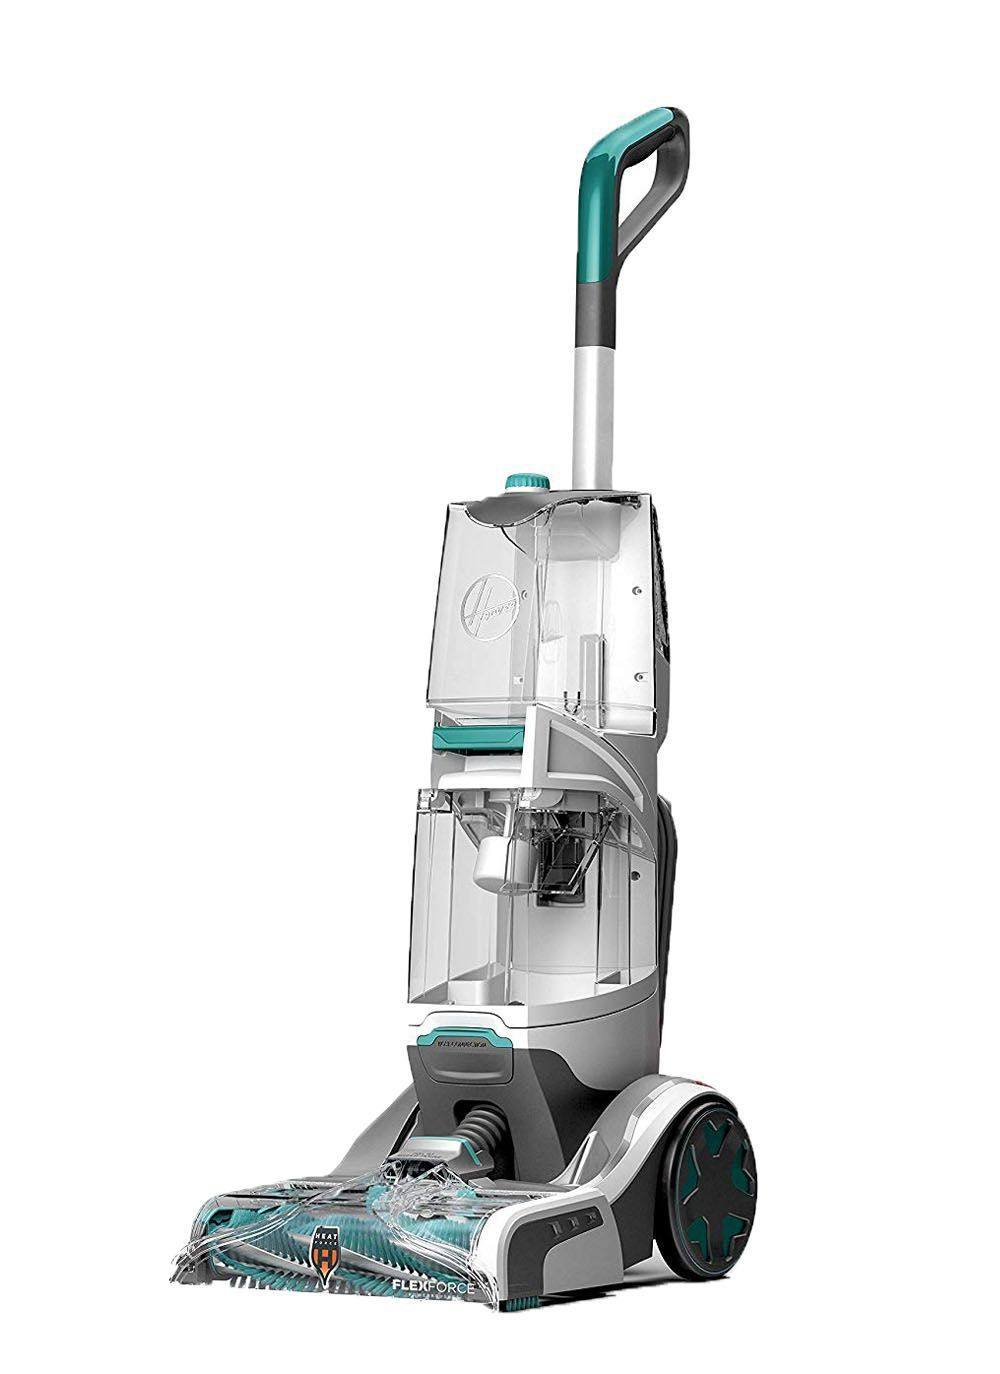 The Best Carpet Cleaners To Buy 2019 Top Carpet Cleaning Machine Reviews Pet Carpet Cleaners Portable Carpet Cleaner Carpet Cleaner Solution